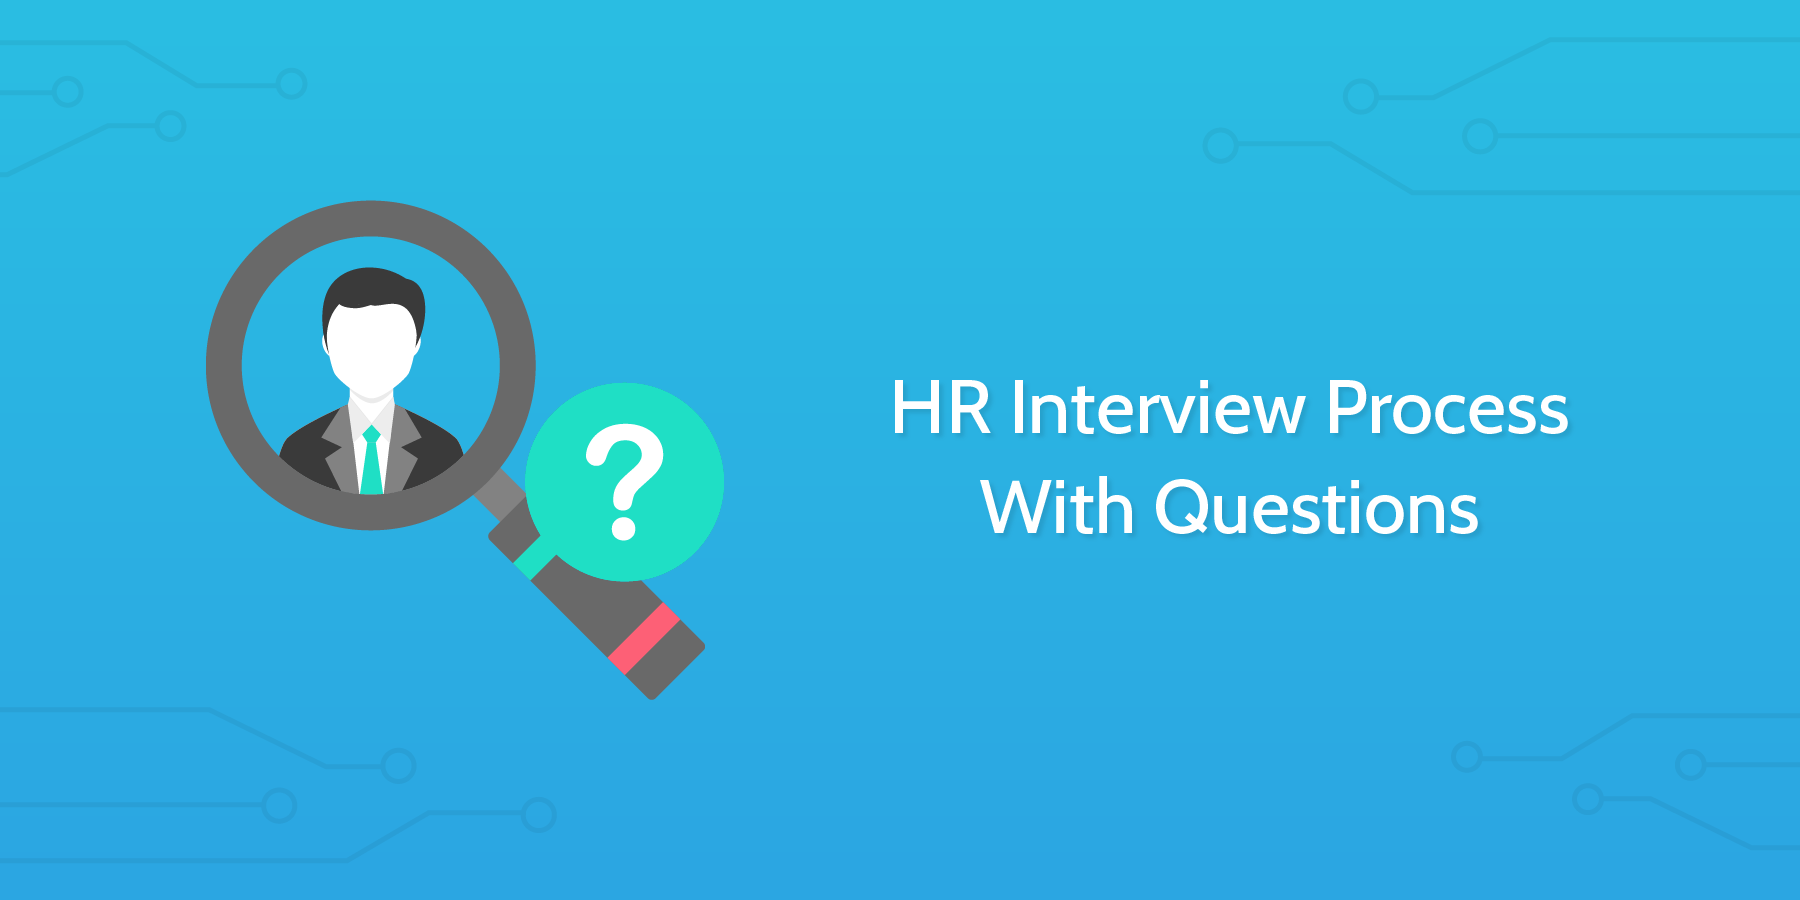 HR Interview Process With Questions